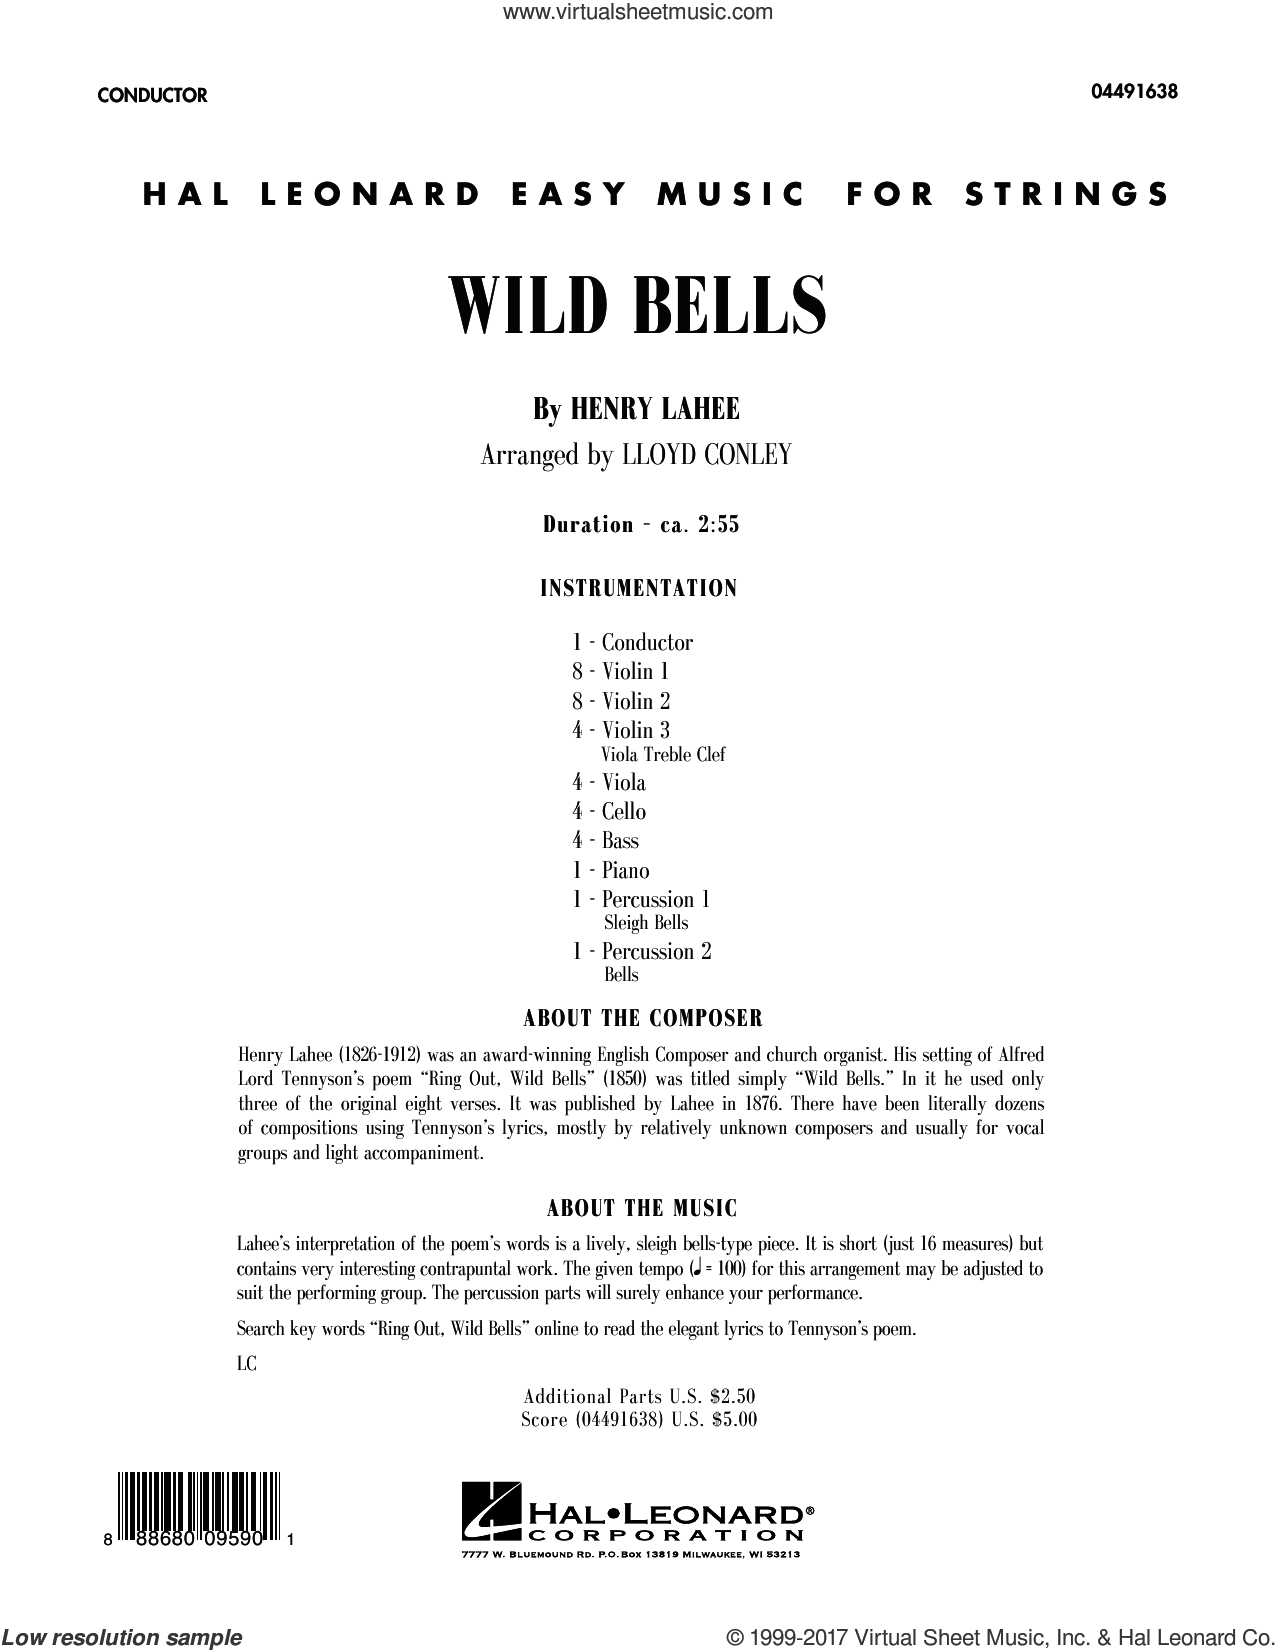 Wild Bells (COMPLETE) sheet music for orchestra by Lloyd Conley and Henry Lahee, intermediate